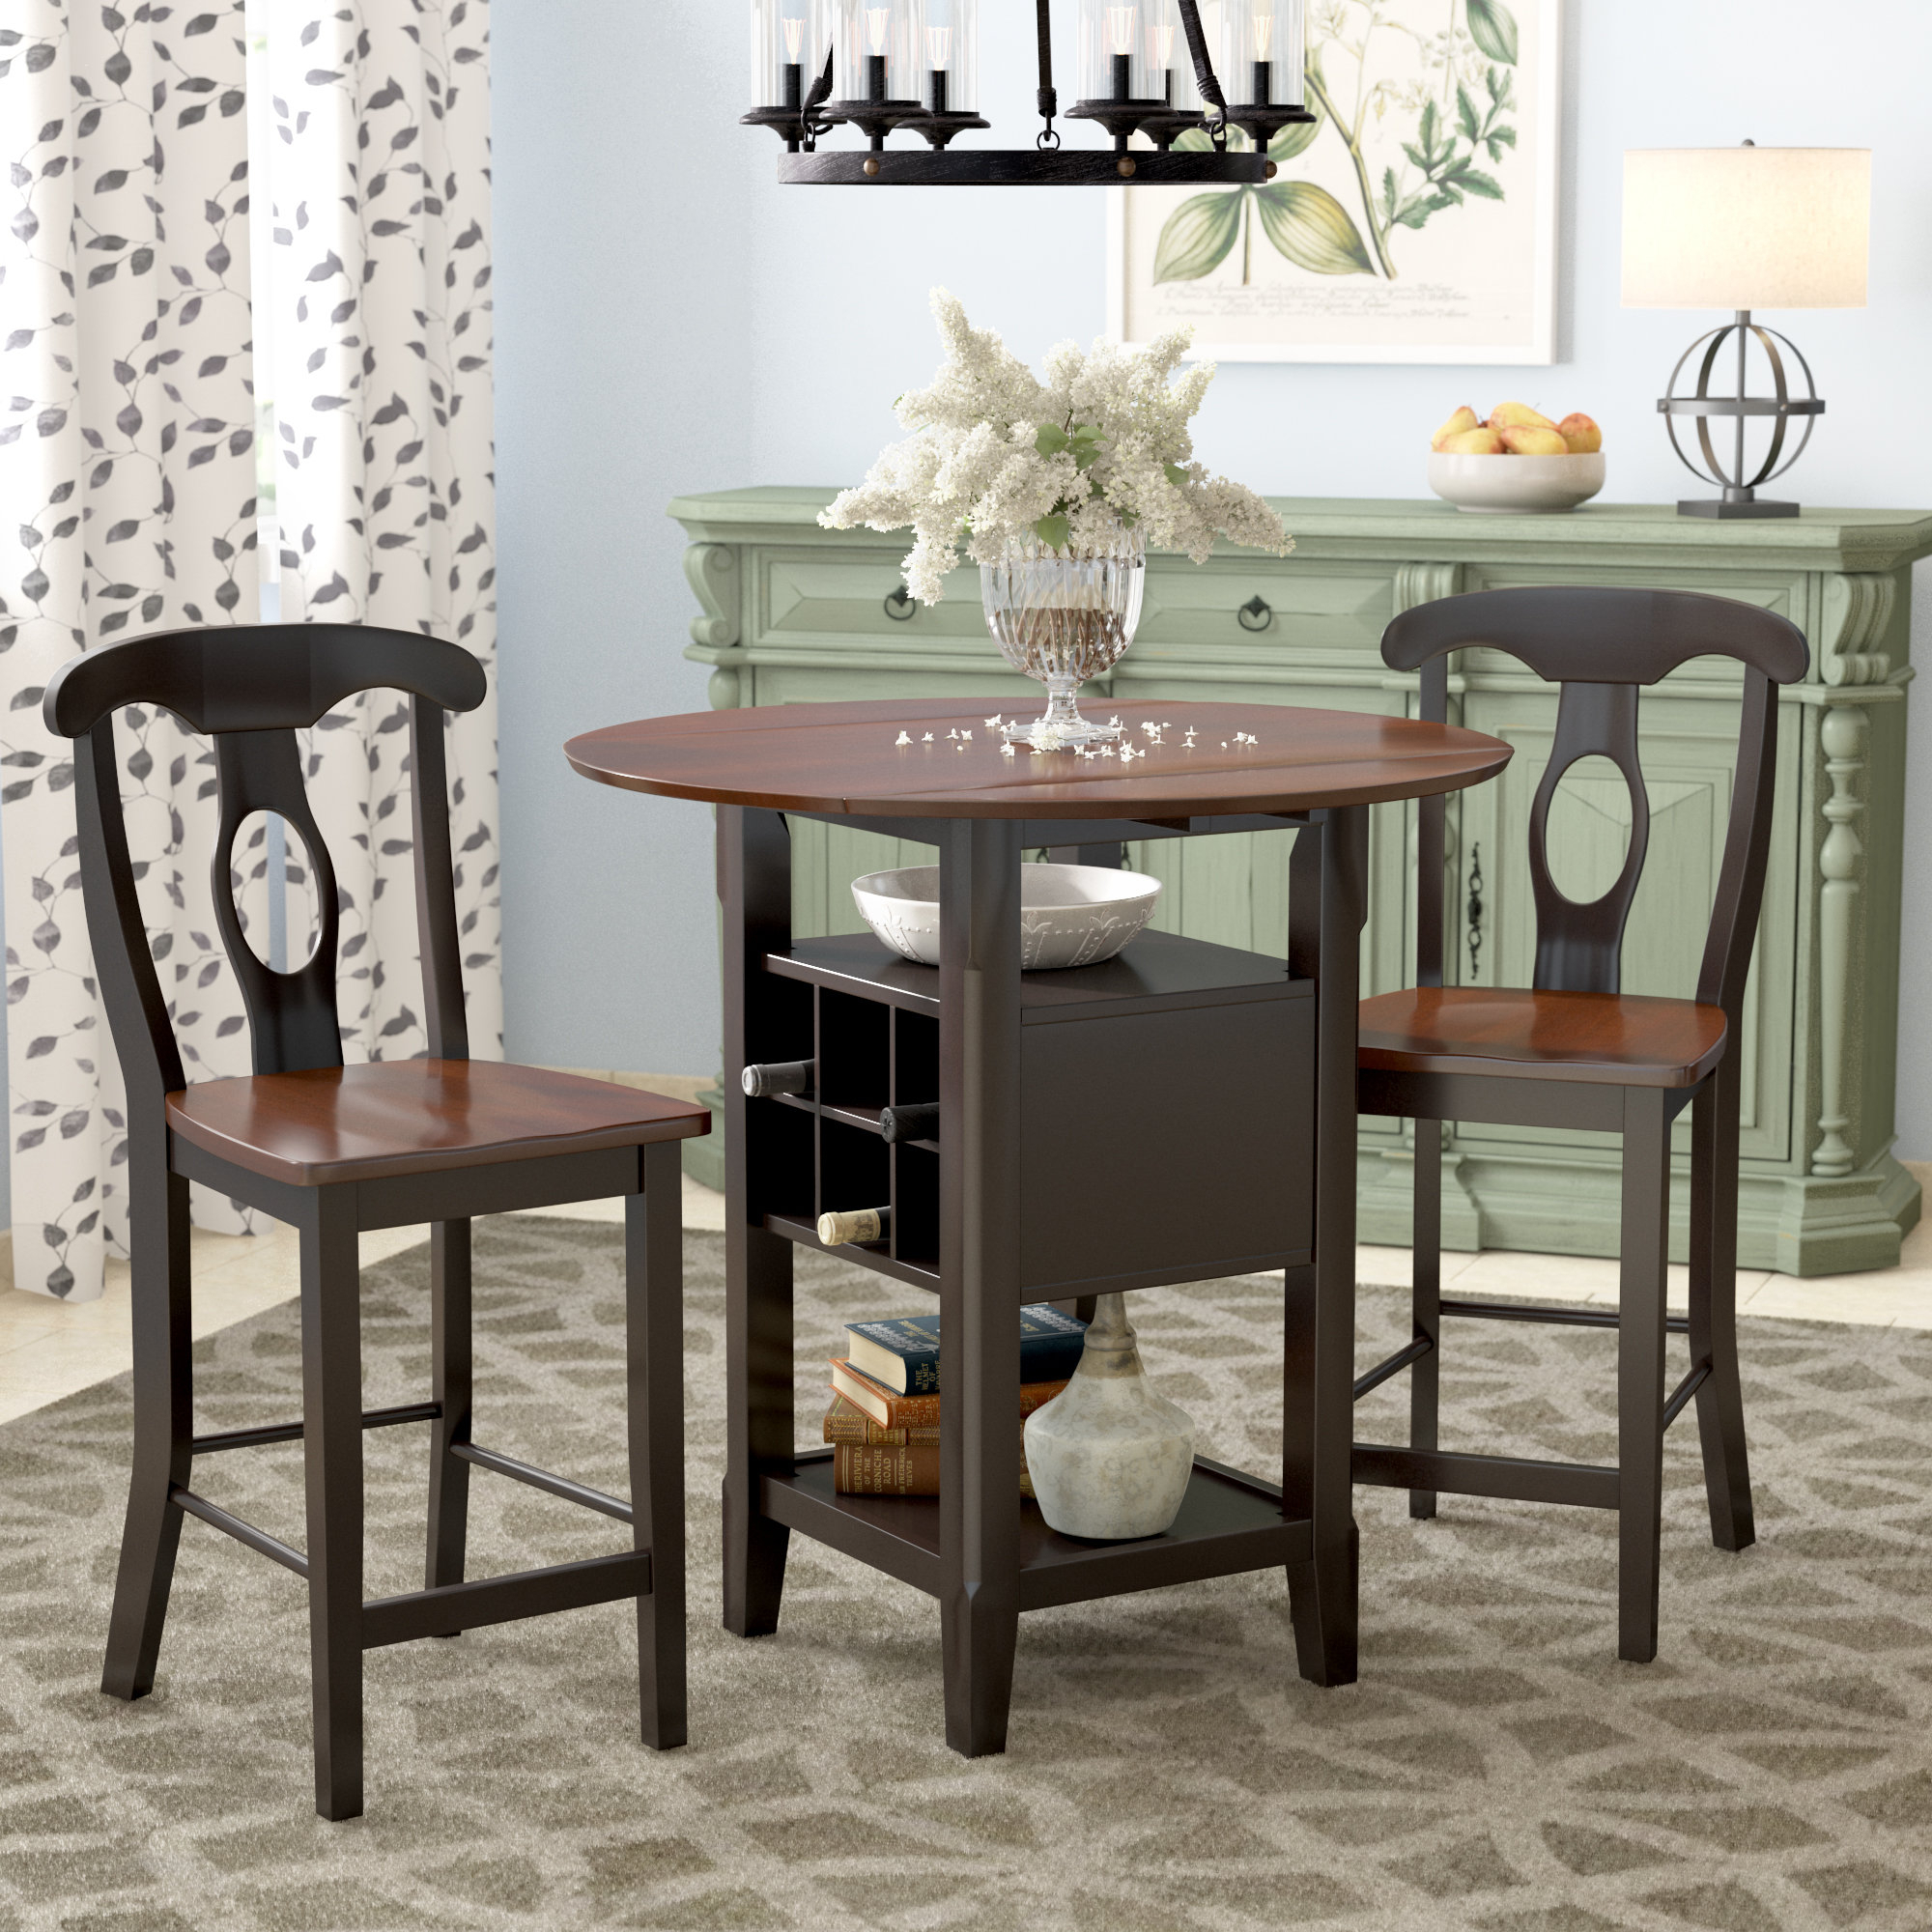 Strope 3 Piece Dining Set Pertaining To Newest 3 Piece Dining Sets (View 7 of 20)